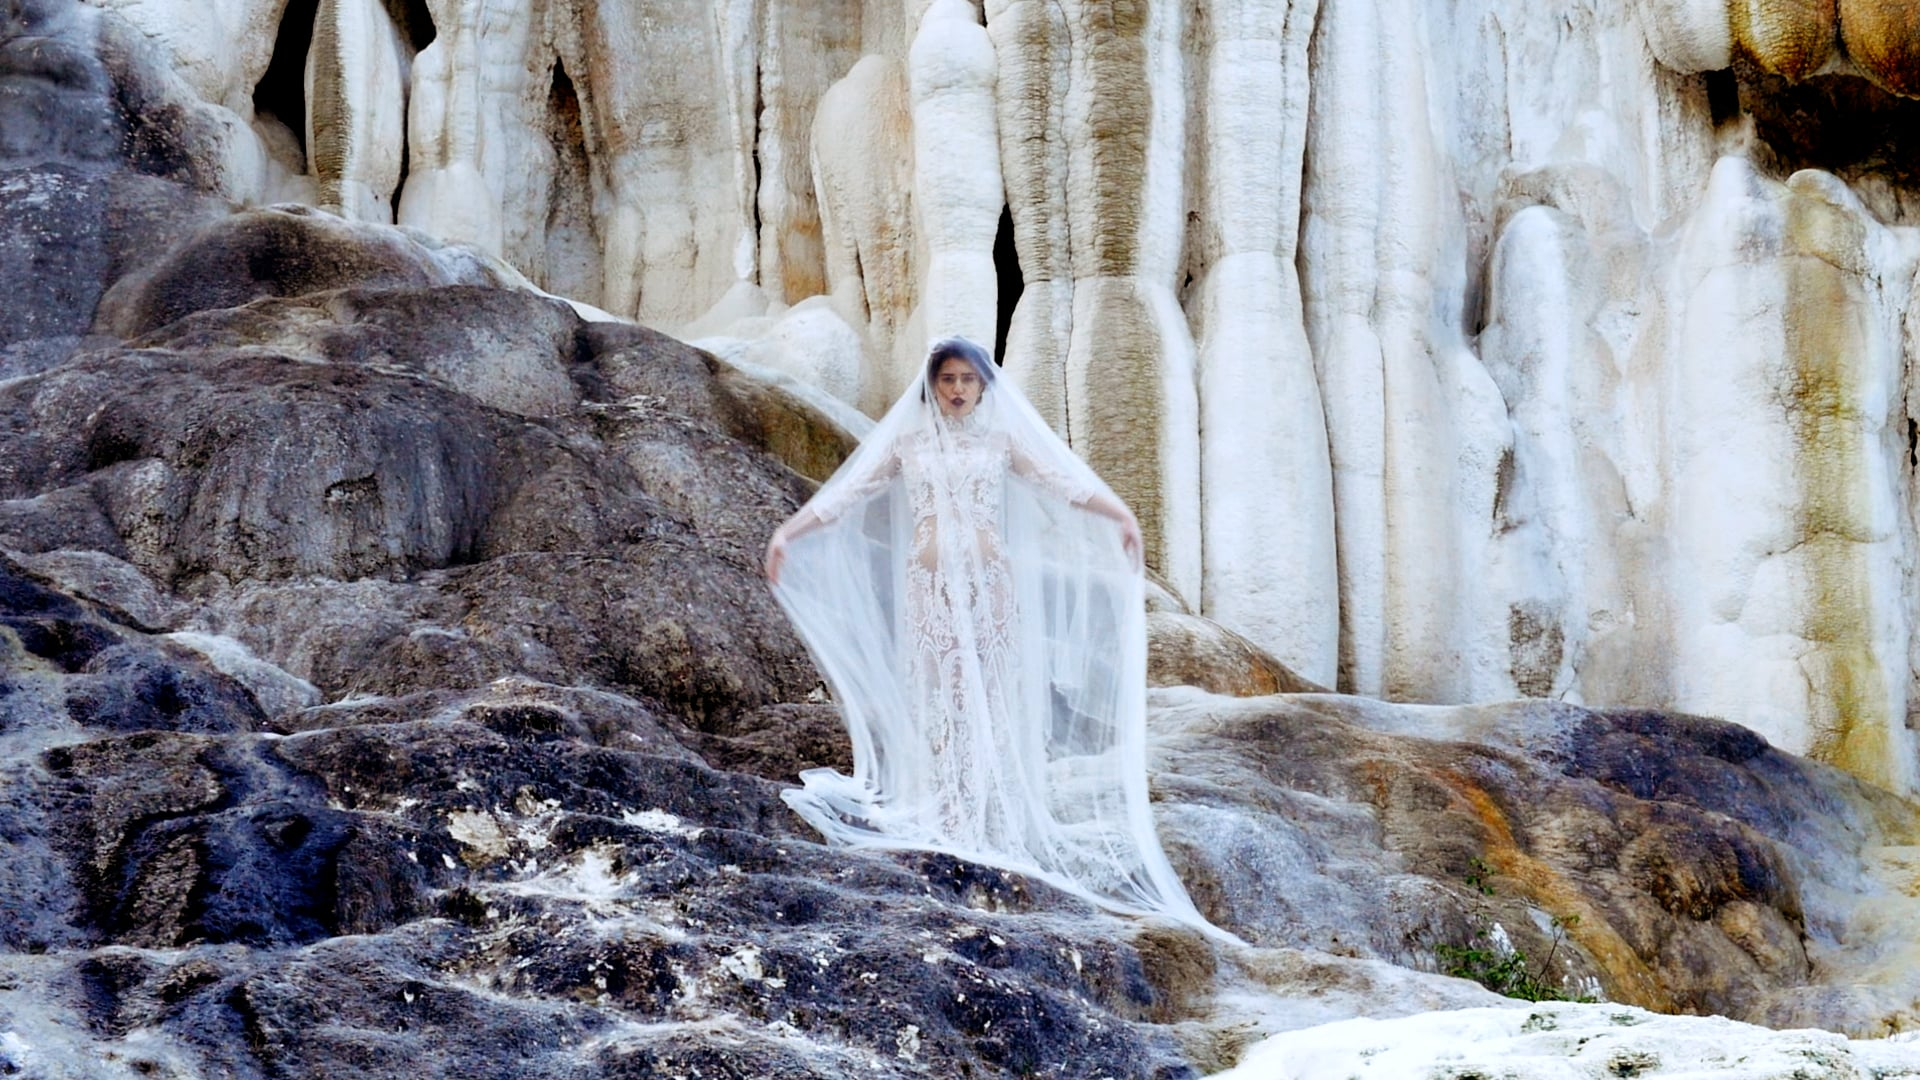 ETHEREAL BRIDAL STYLE INSPIRATION BY ITALY'S NATURAL BATHS IN VAL D'ORCIA - STYLED SHOOT VIDEOGRAPHY IN TUSCANY, ITALY